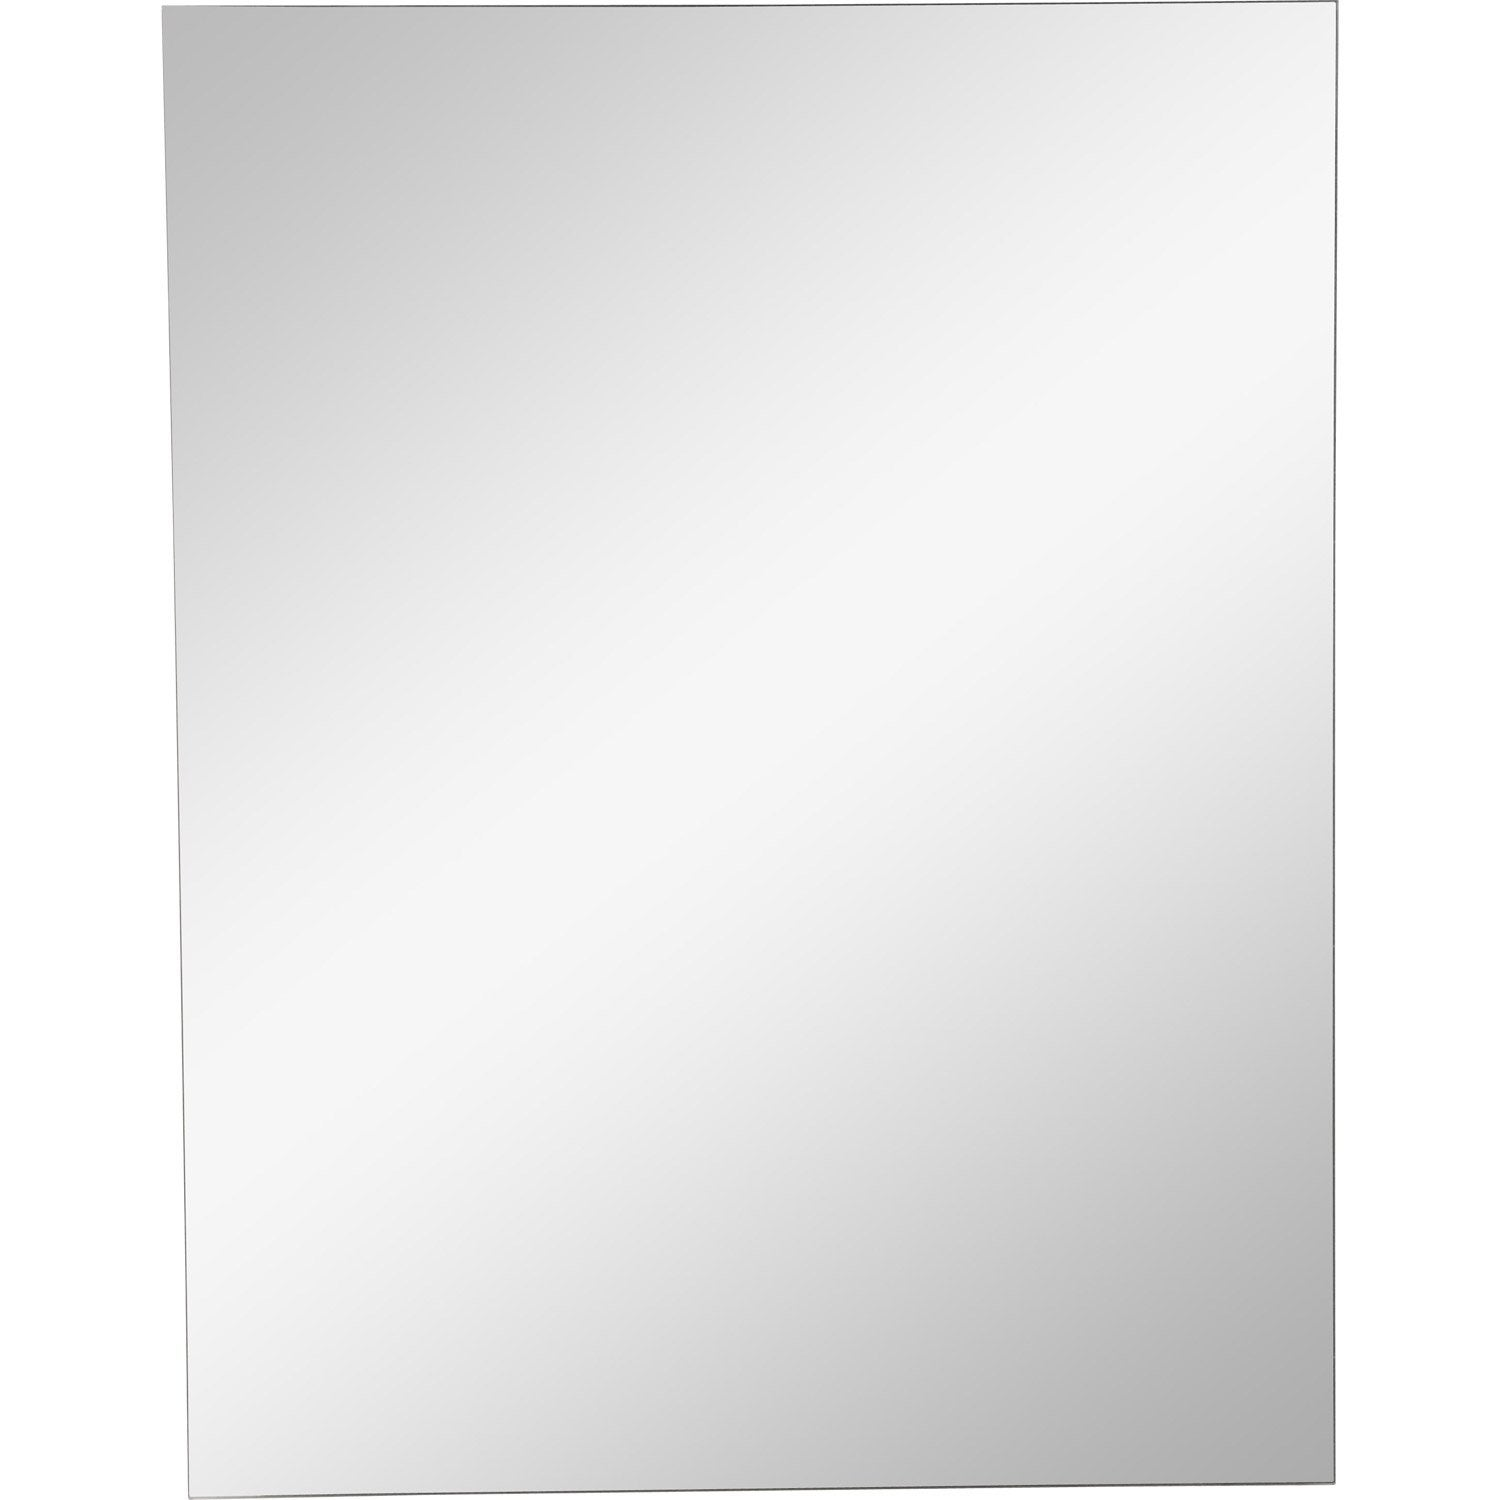 Miroir modulo composer sensea x cm leroy merlin for Miroir decoratif leroy merlin